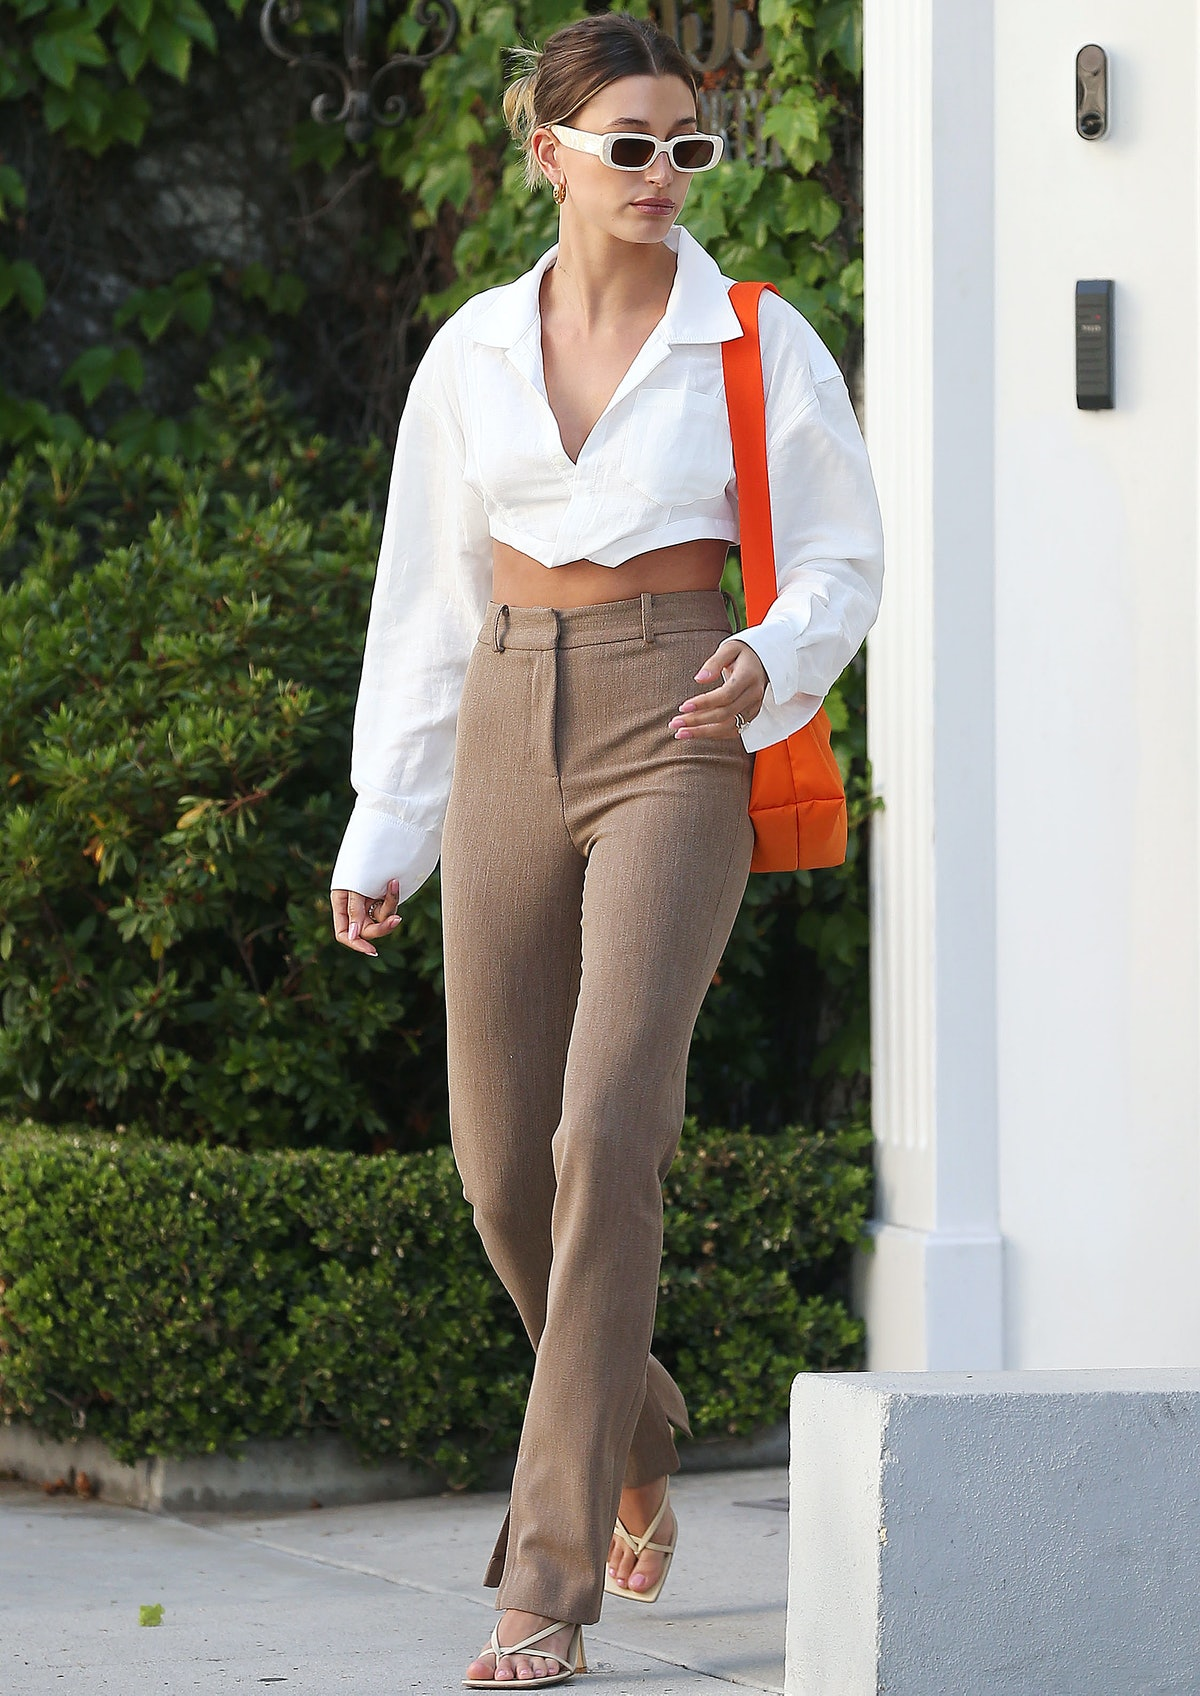 Hailey Bieber is seen about and about in Los Angeles, California in May 2021.